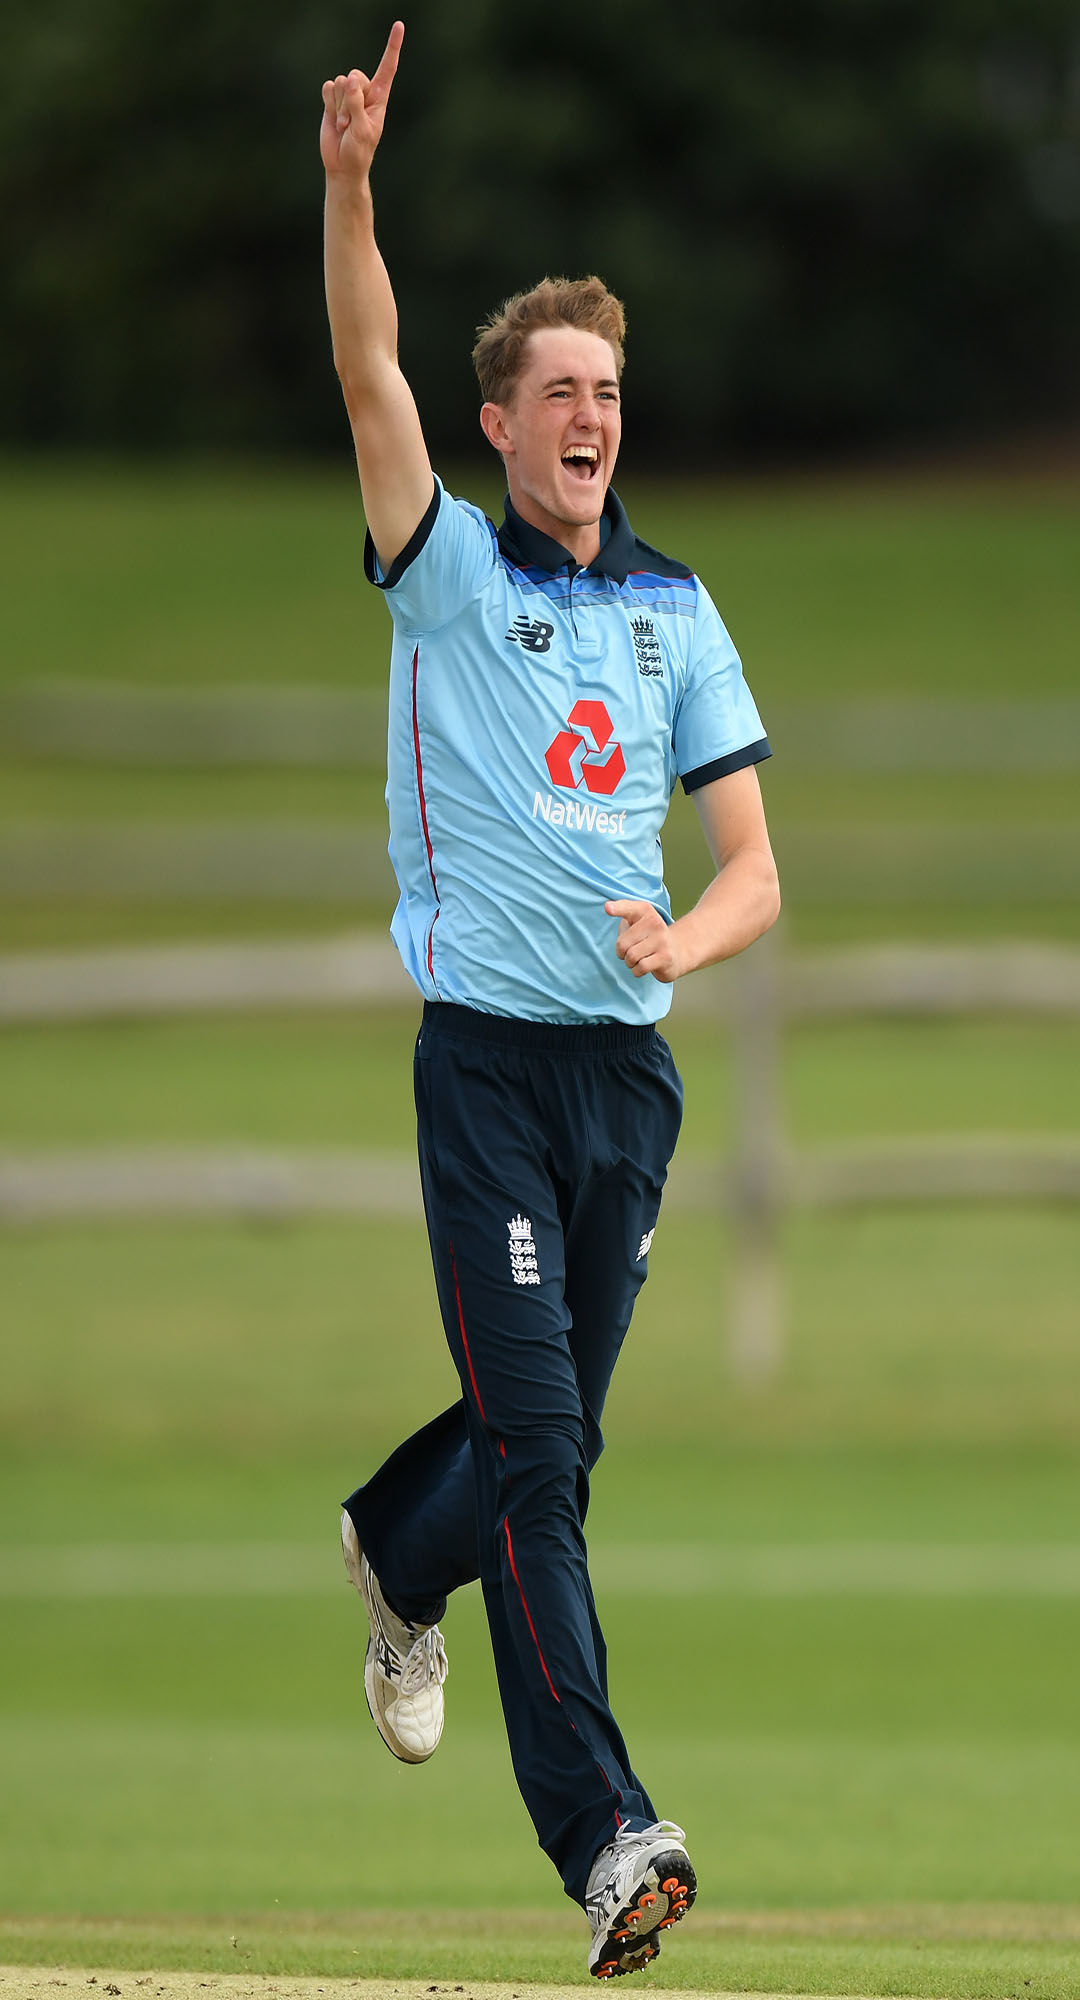 Phoenix Management Group's George Balderson celebrates after dismissing Yashasvi Jaiswal of India U19 during an Under 19 Tri-Series match between England U19 and India U19 at the County Ground (Photo by Mike Hewitt/Getty Images).